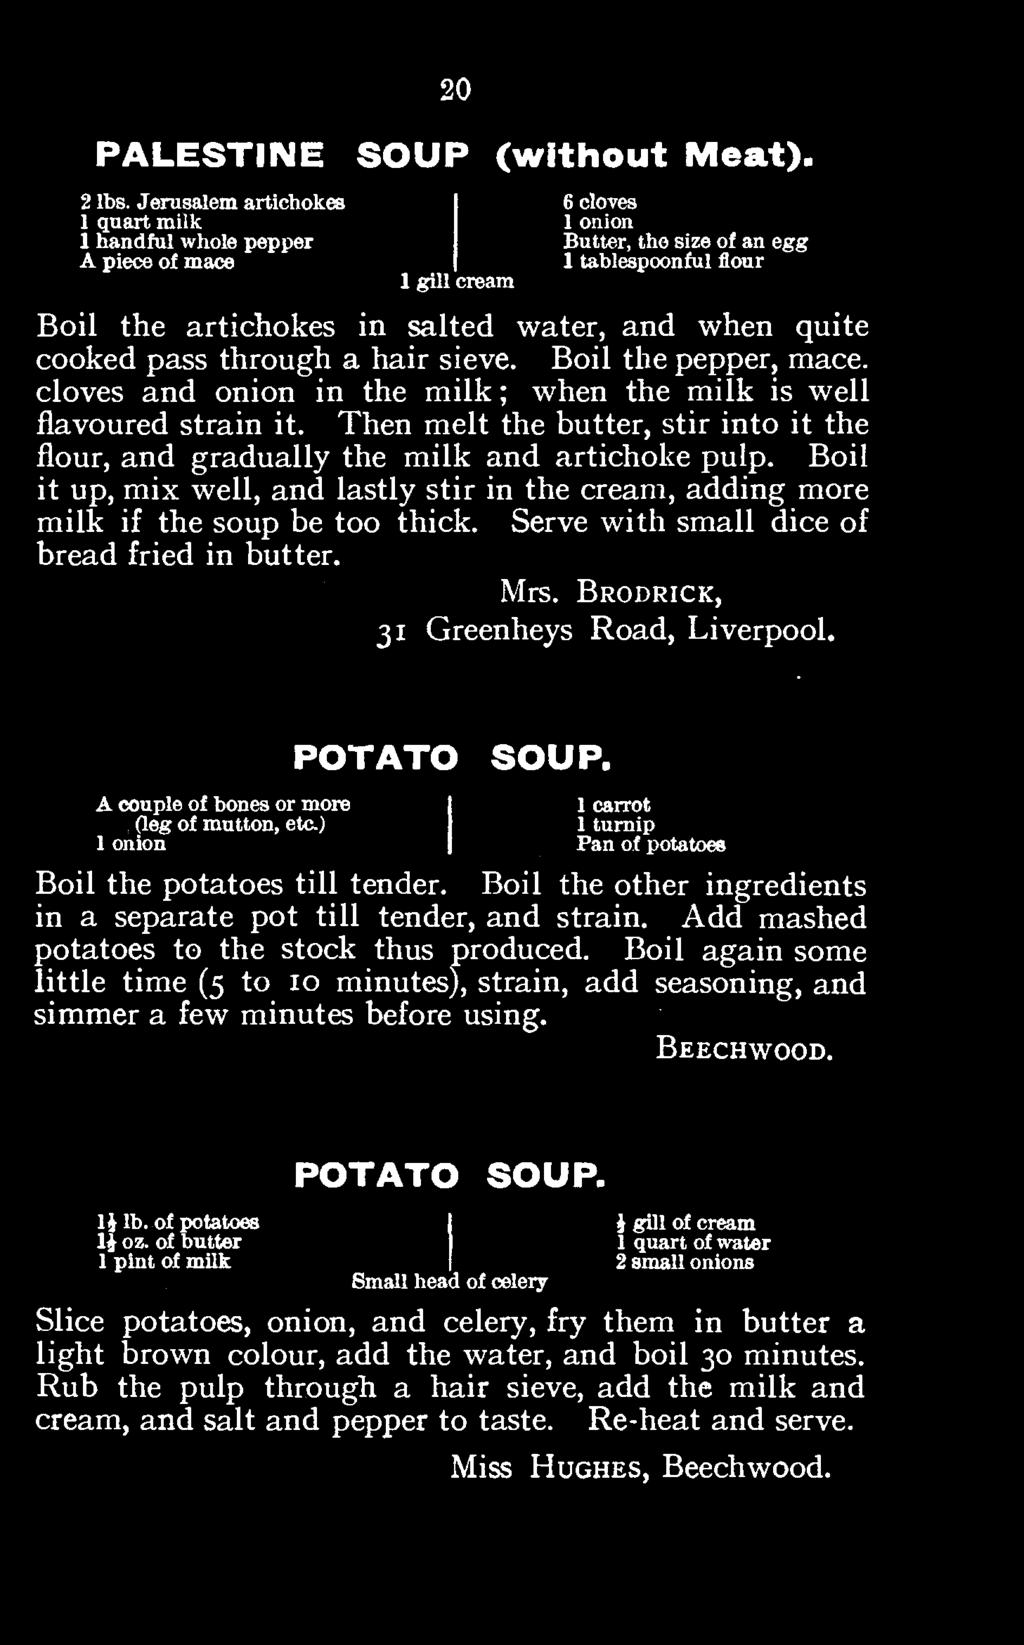 Serve with small dice of bread fried in butter. Mrs. Brodrick, 31 Greenheys Road, Liverpool. POTATO SOUP. A couple {leg of of mutton, bones or etc.